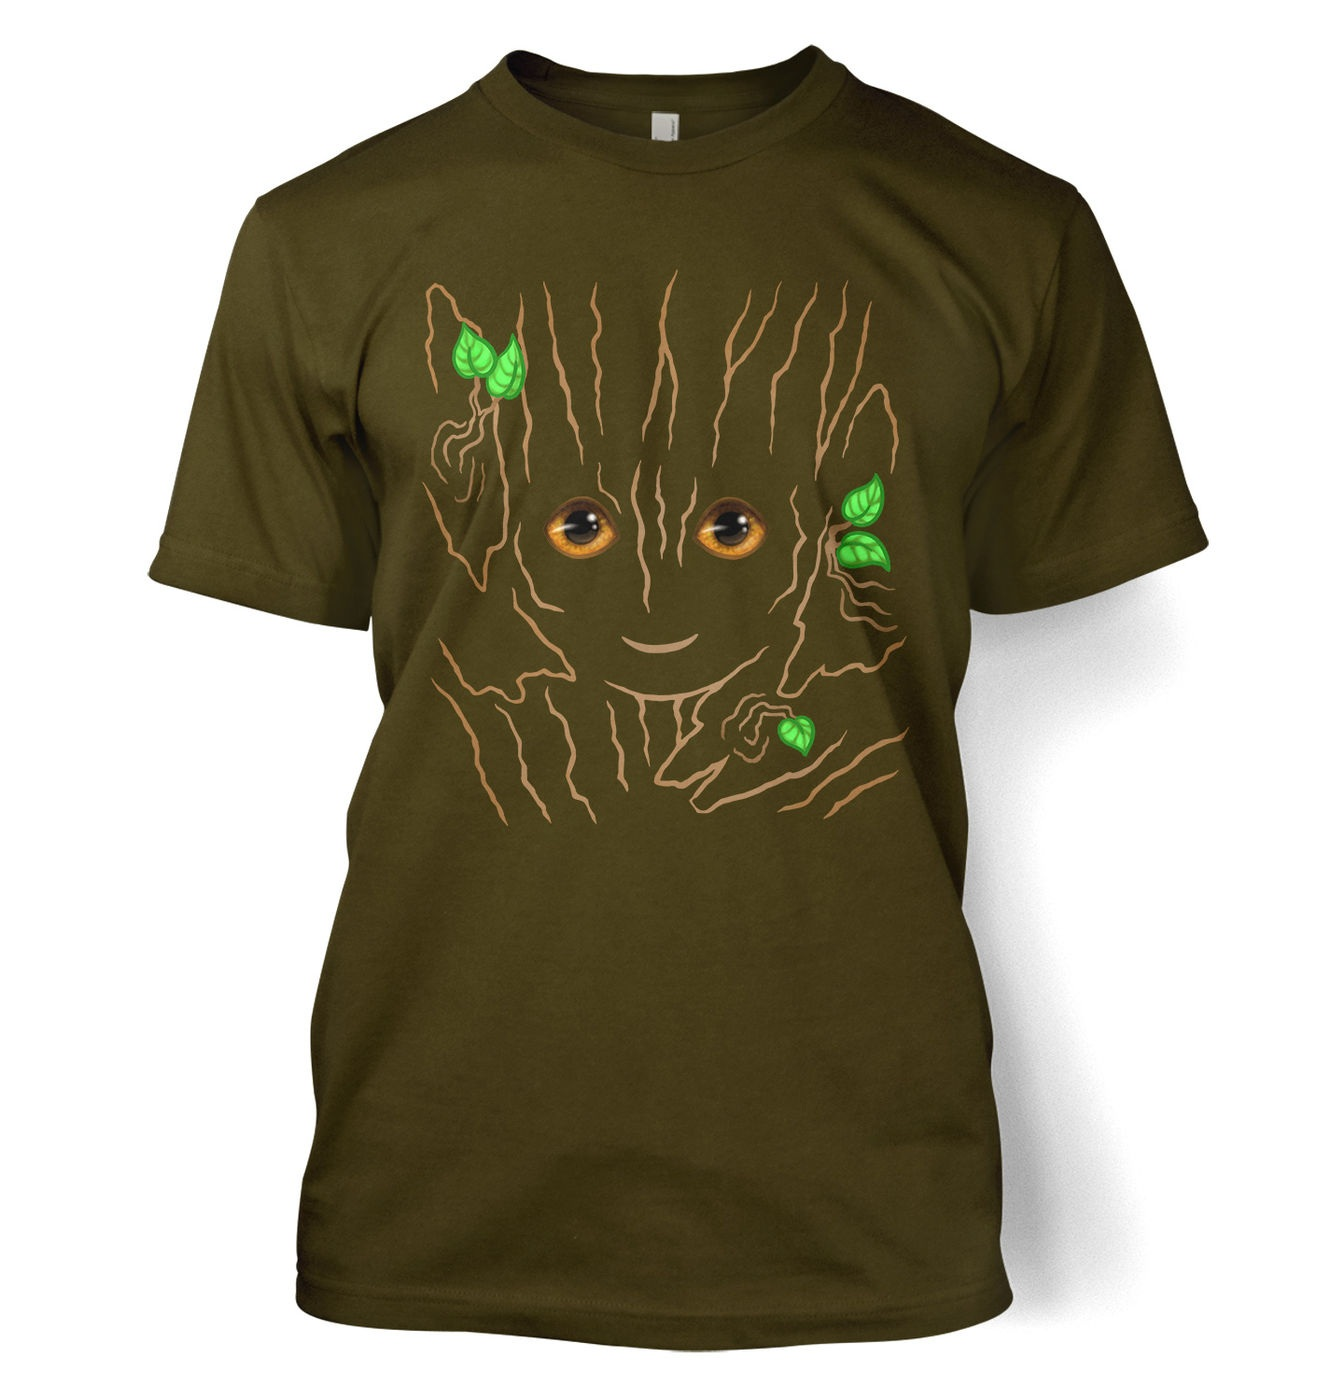 Baby Tree Costume t-shirt by Something Geeky